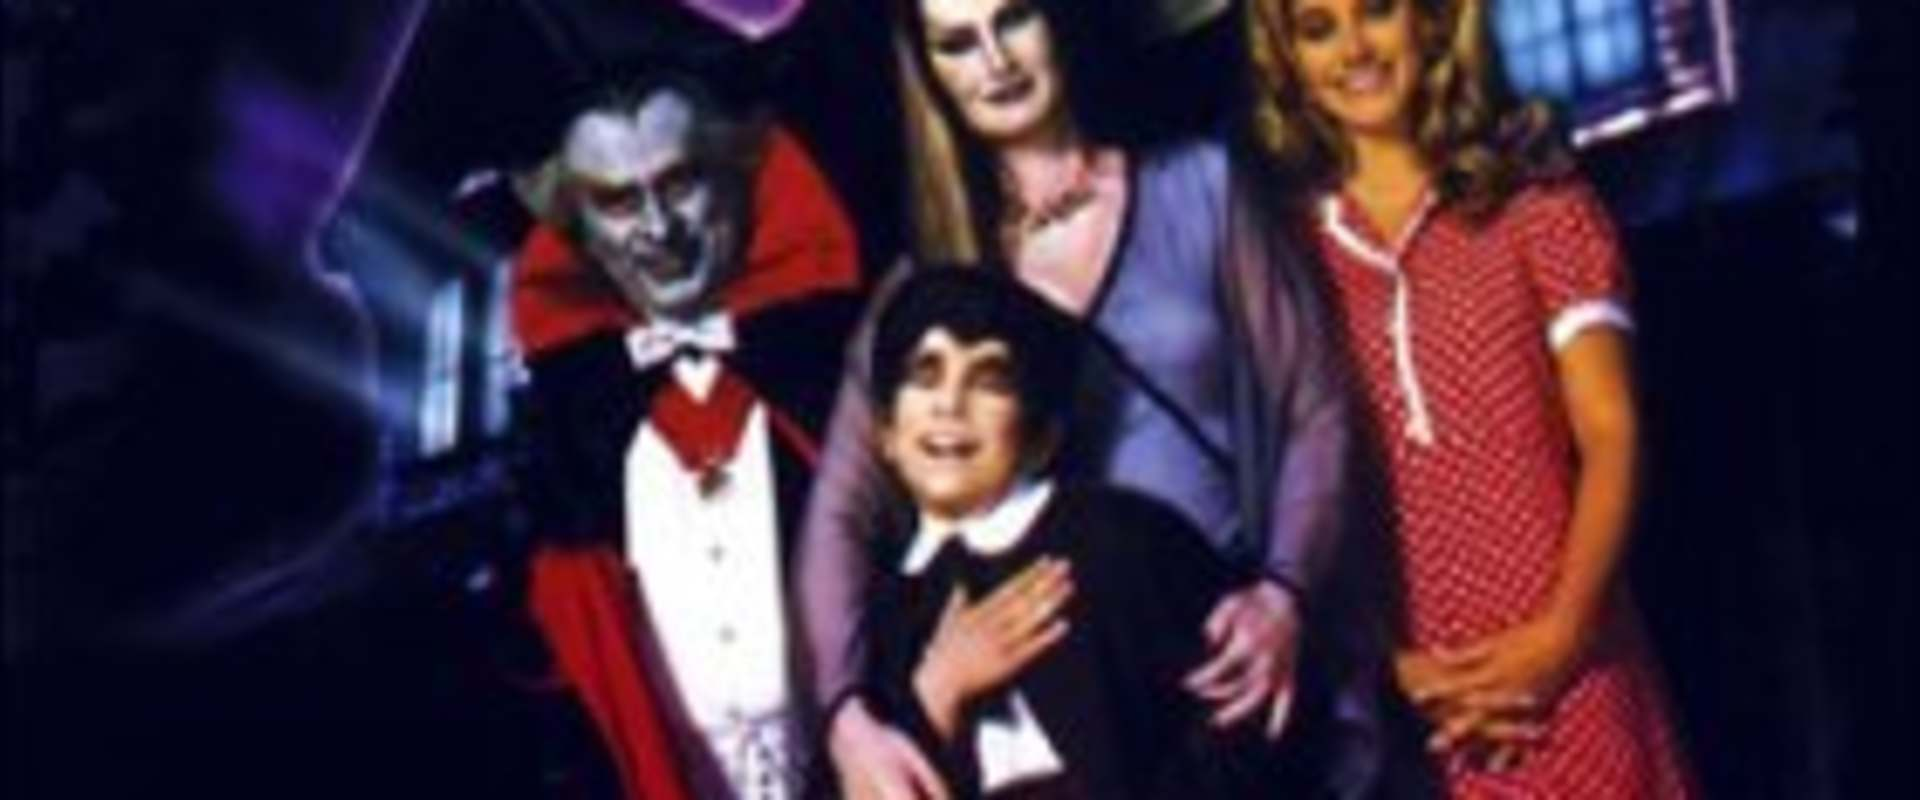 Here Come the Munsters background 2